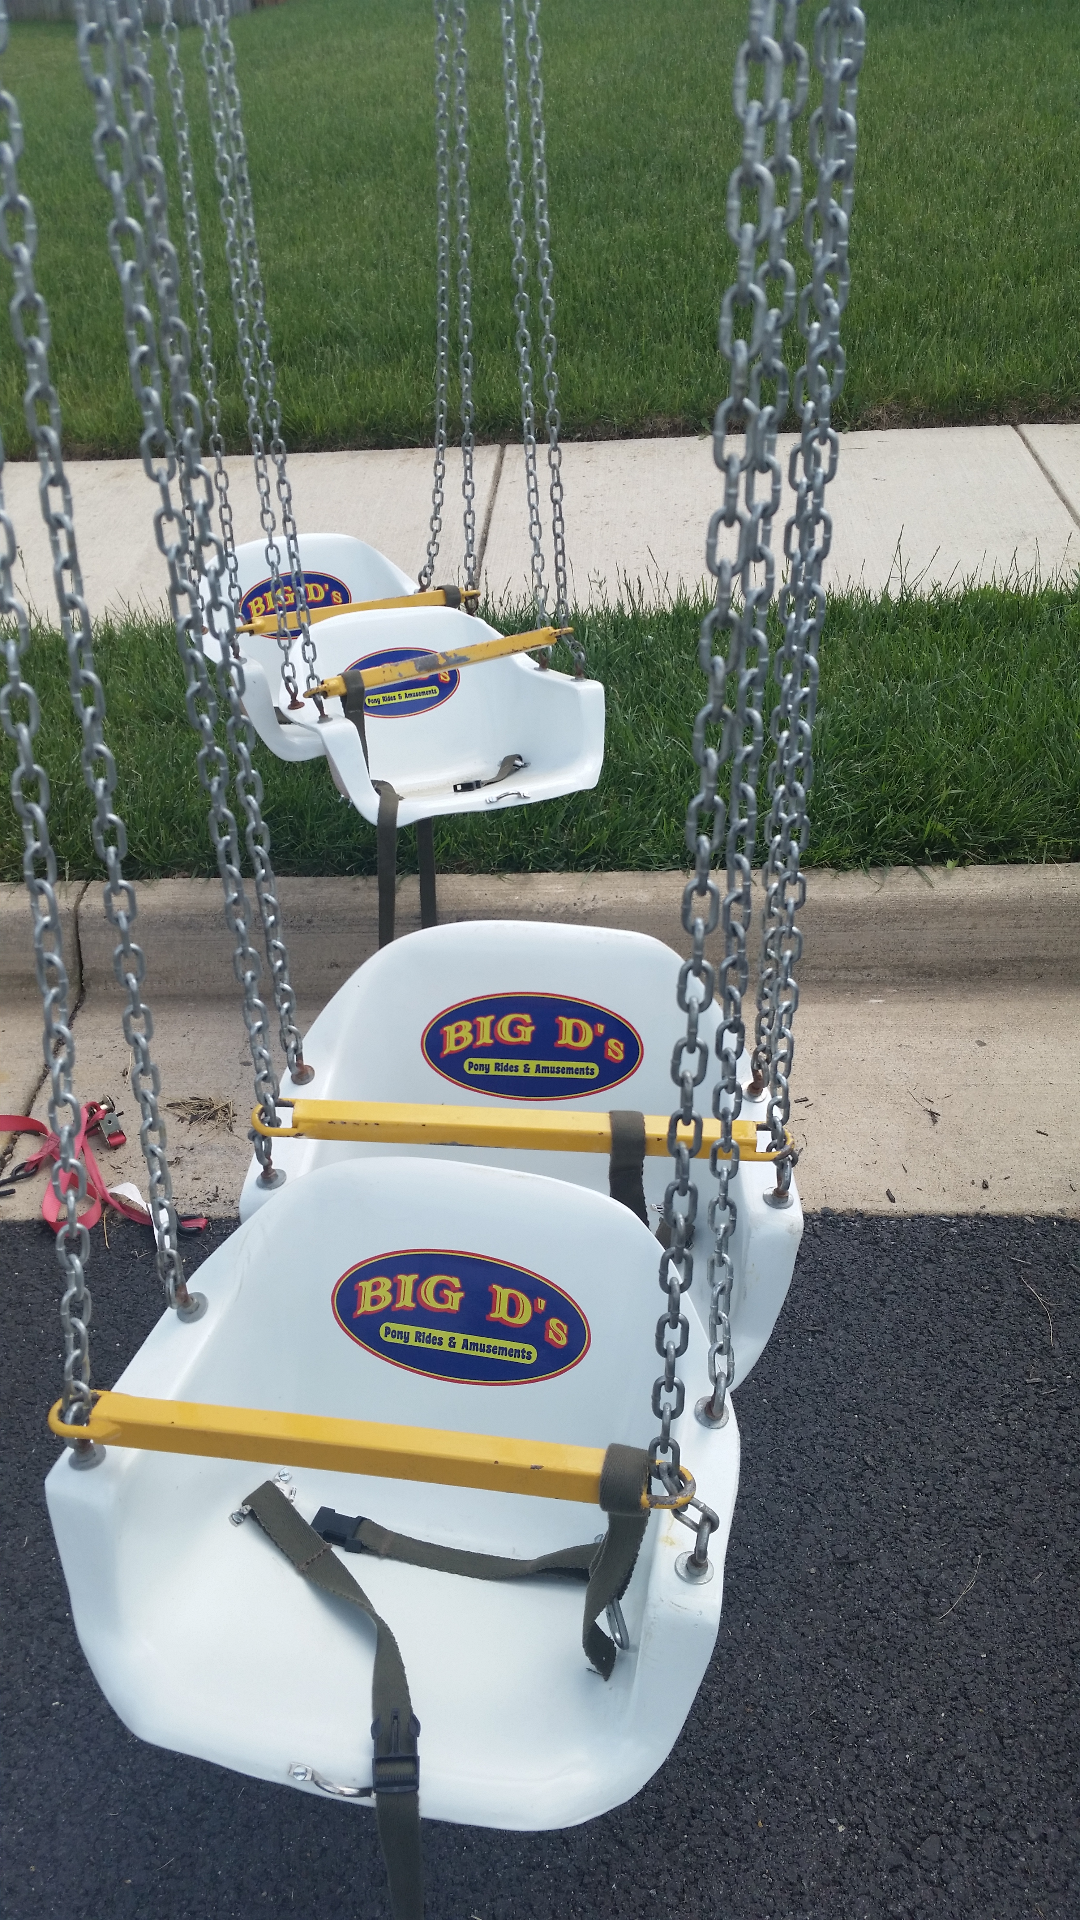 Swing ride decal